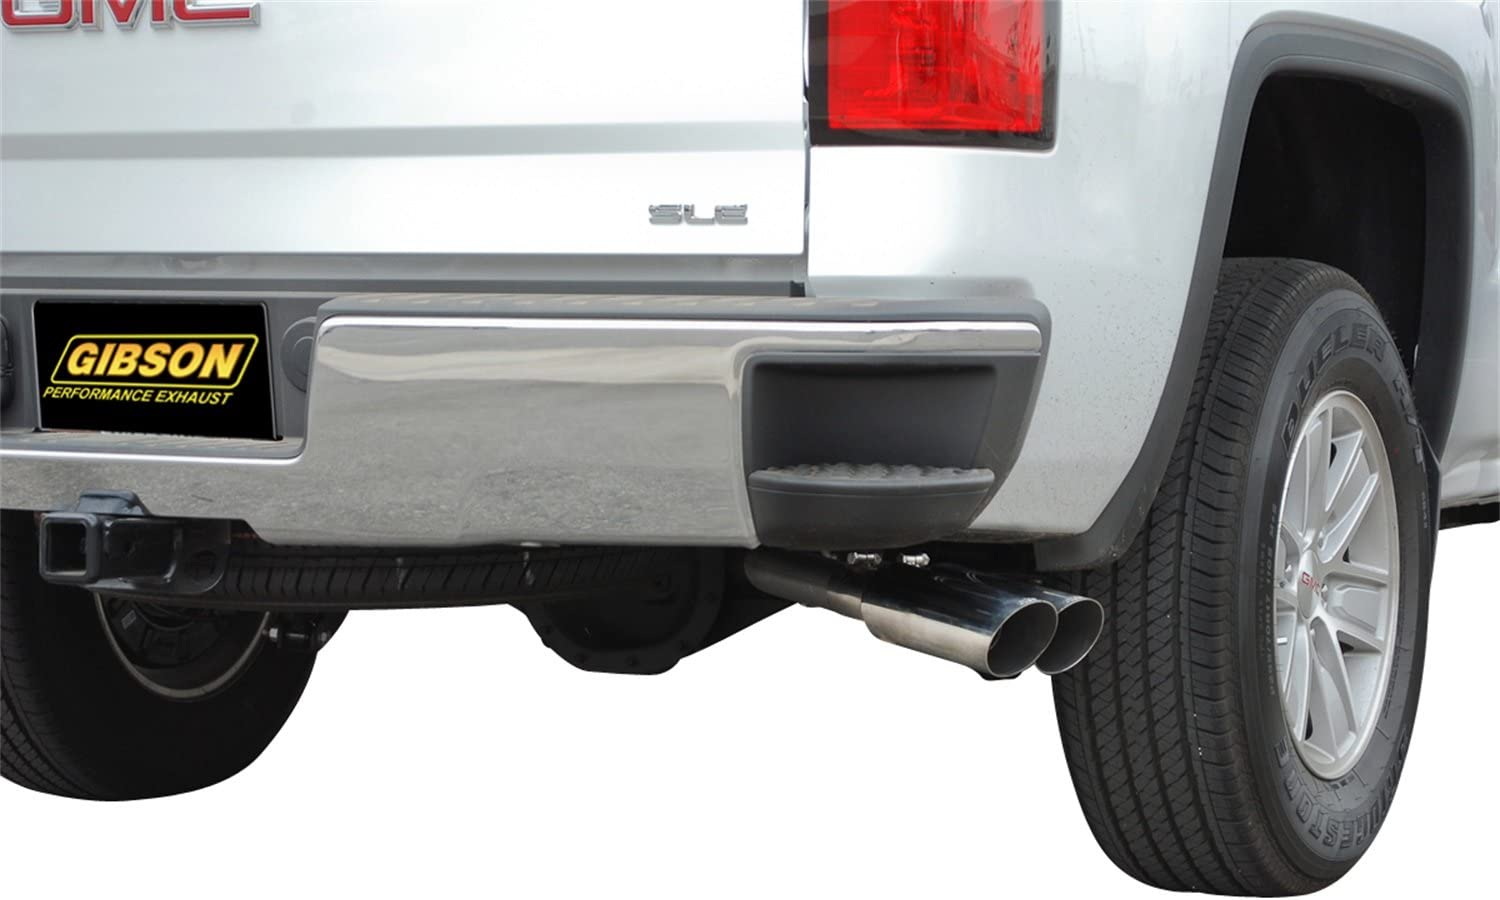 gibson performance exhaust 65656 stainless dual sport cat back performance exhaust system